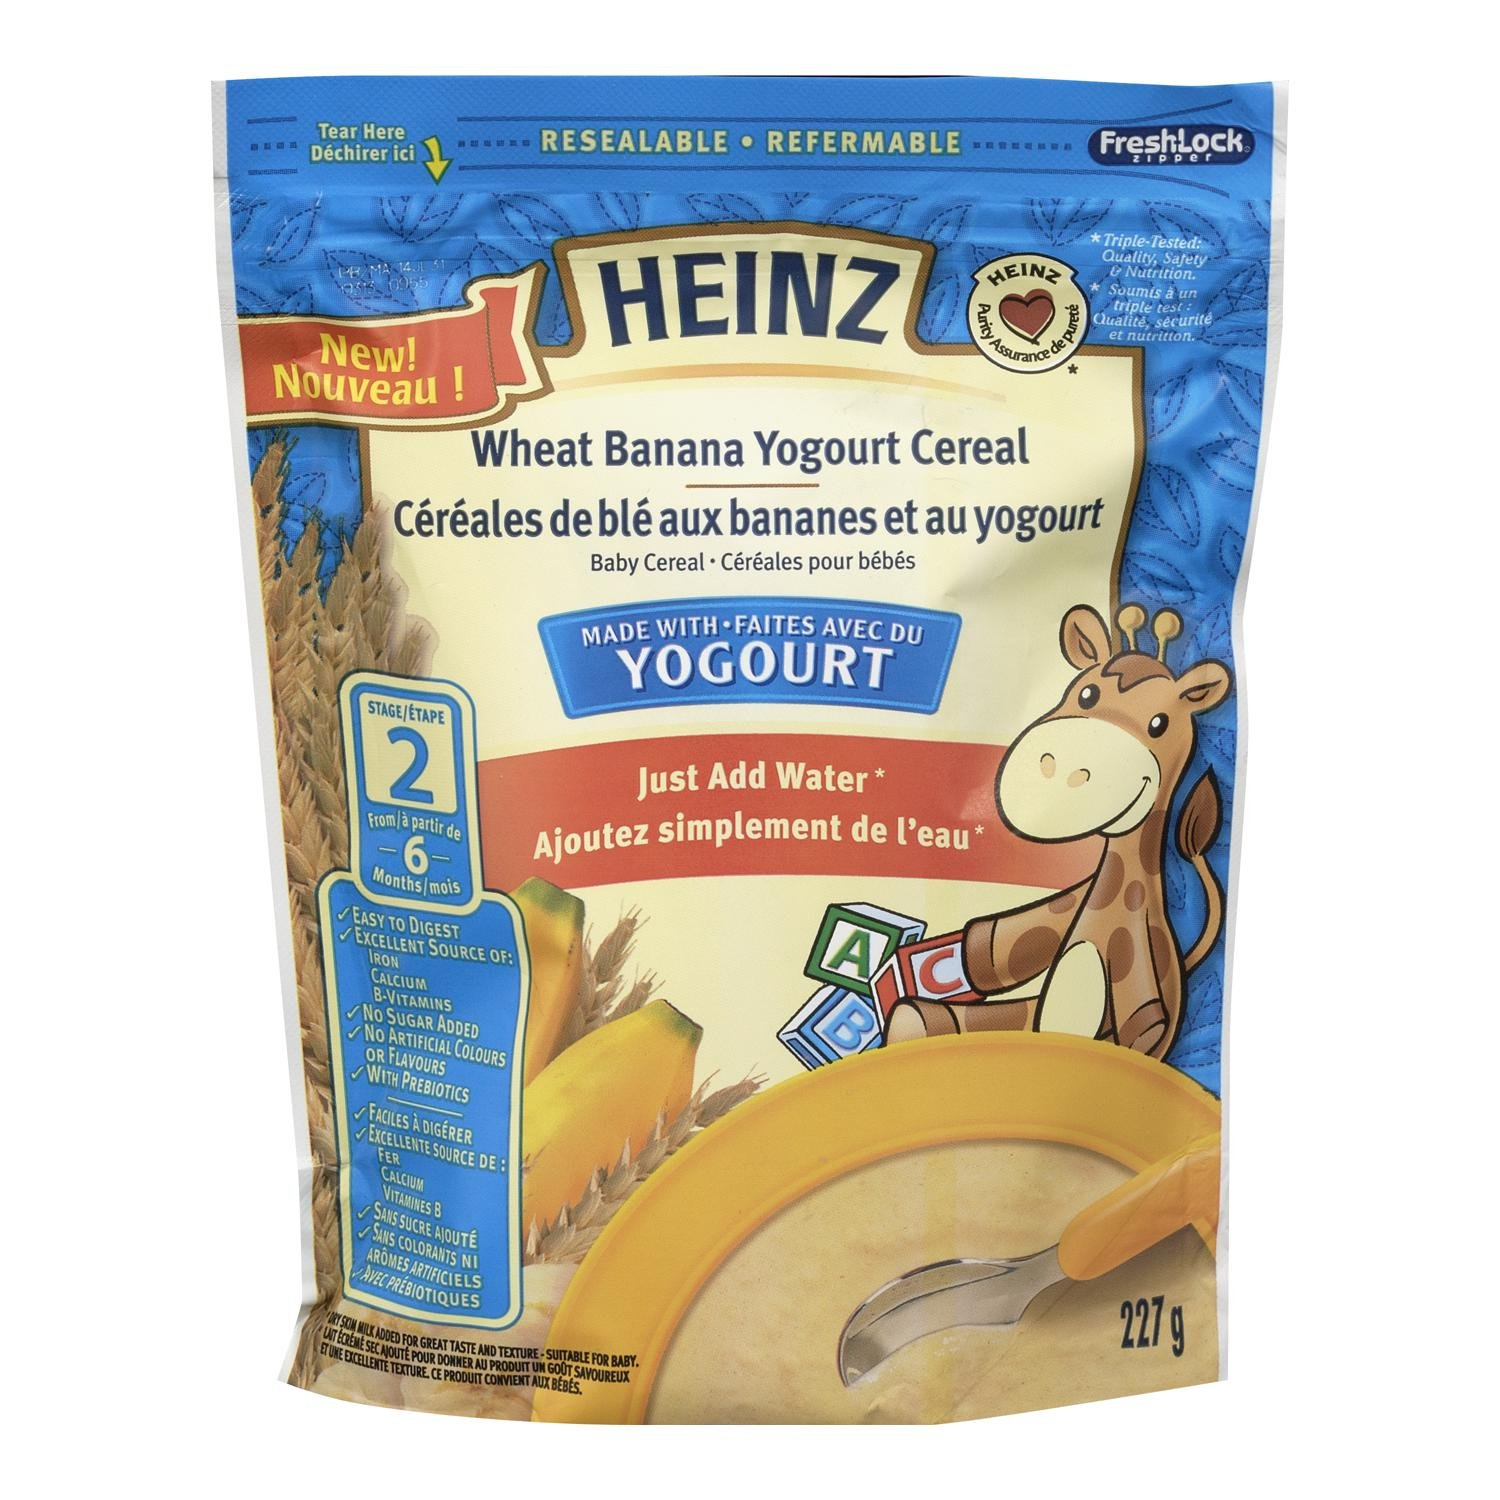 HEINZ Wheat Banana Yougourt Cereal, 6 Pack, 227g, 1 Count